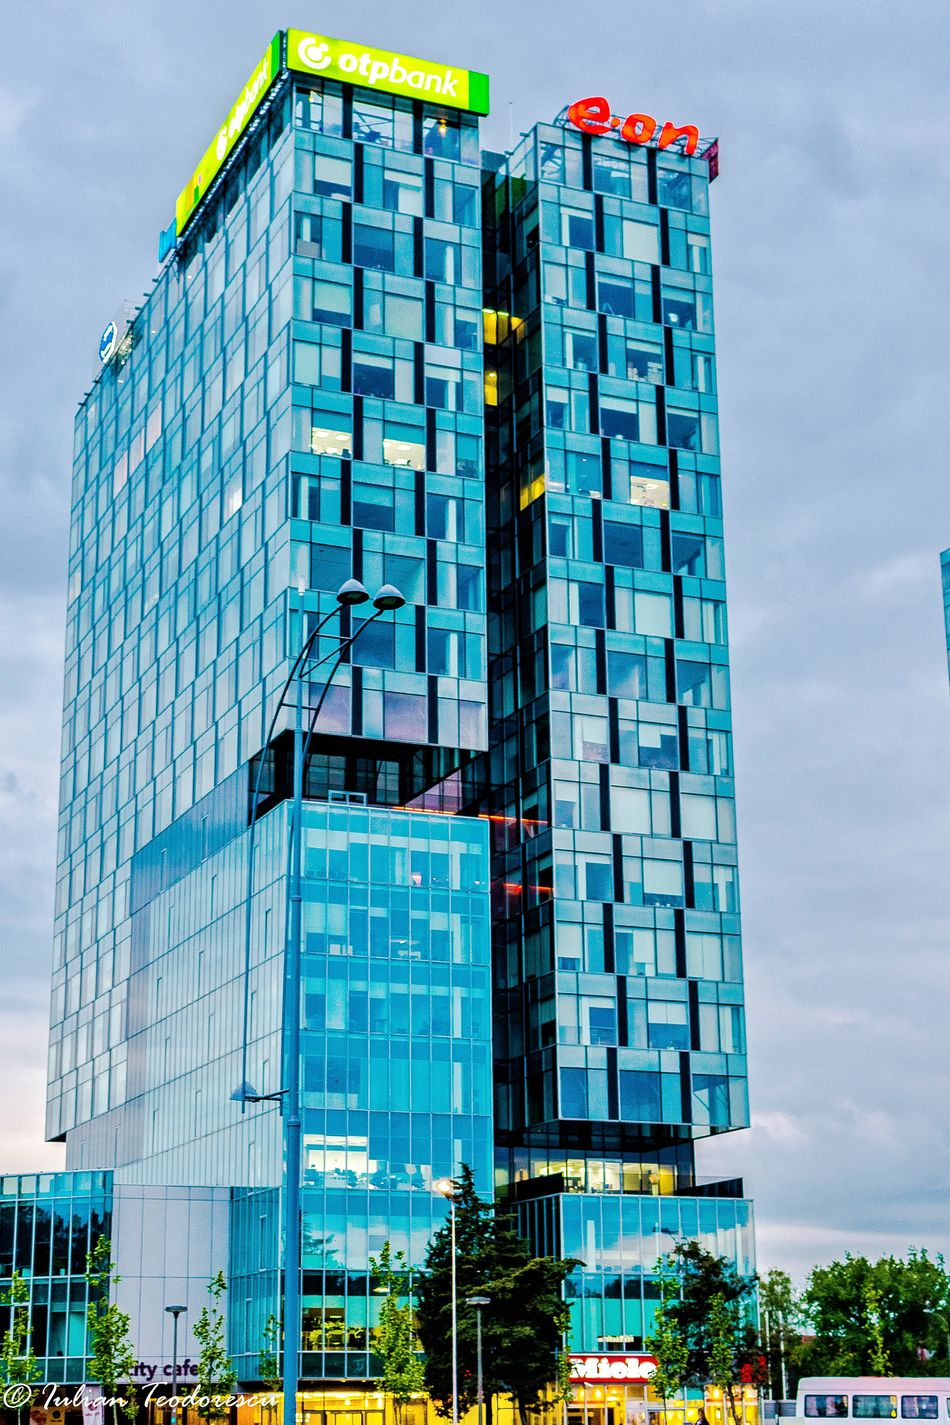 Architecture Skyscraper Building Exterior Built Structure City Urban Skyline No People Sky Outdoors Day Innovation Otpbank Eon Nikonphotography Nikon